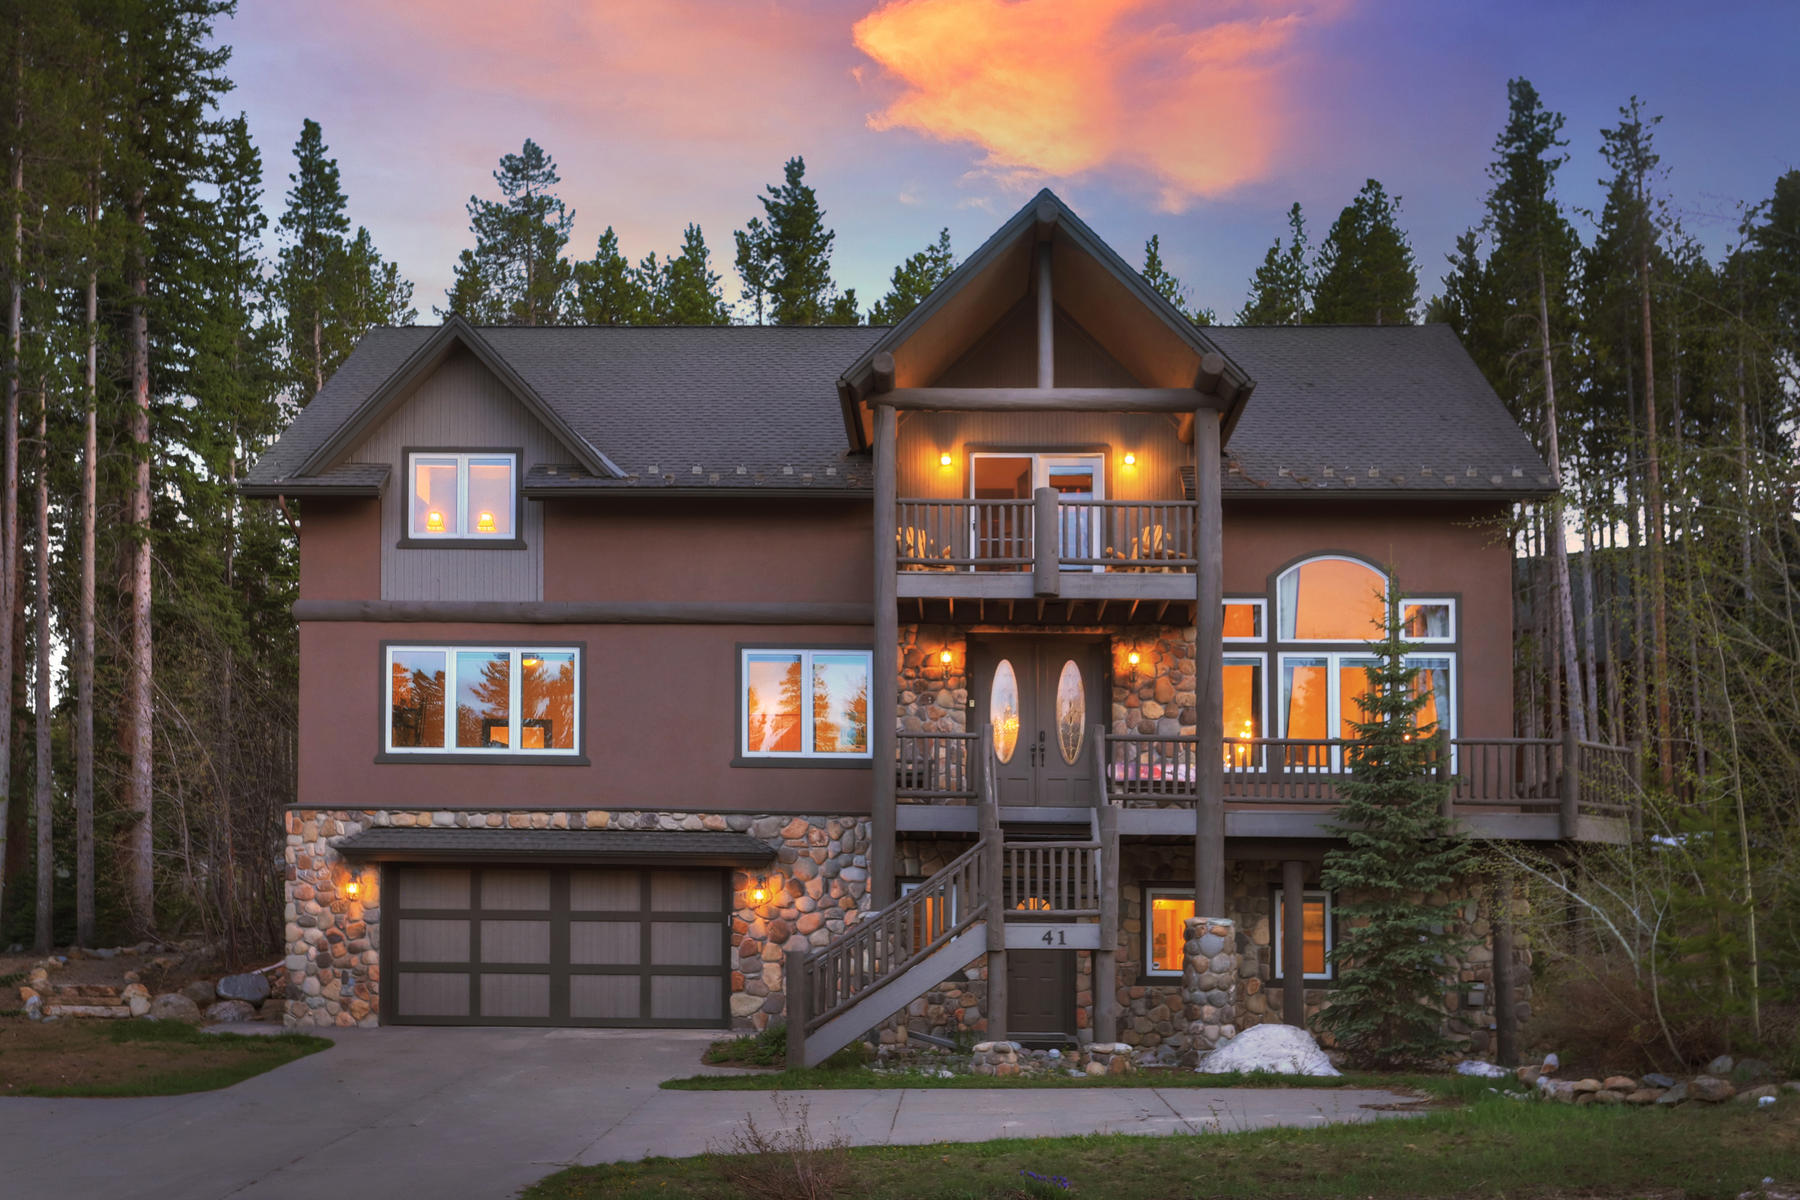 Single Family Home for Active at The Ski Inn 41 Boulder Circle Breckenridge, Colorado 80424 United States